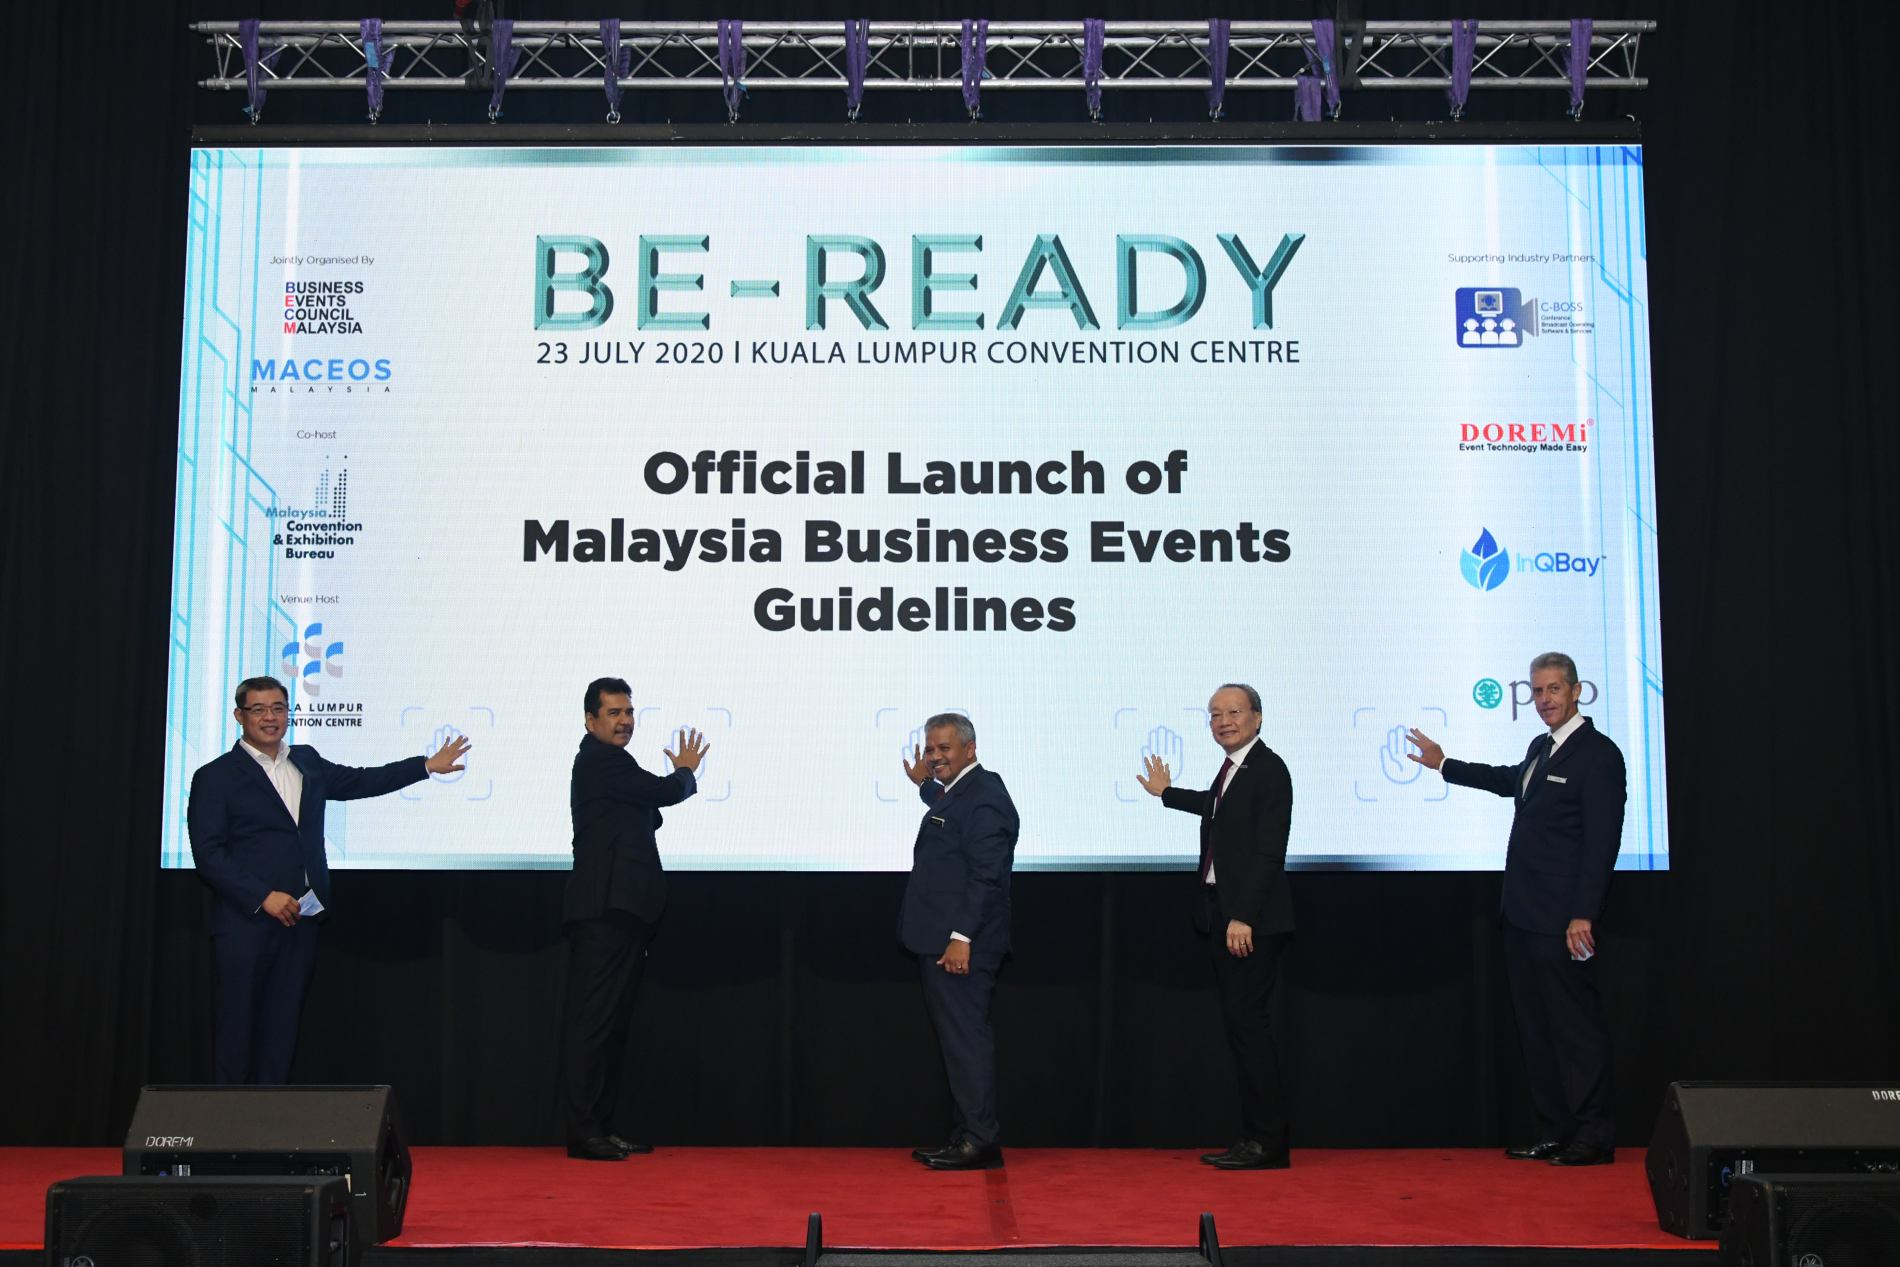 BE READY Launch